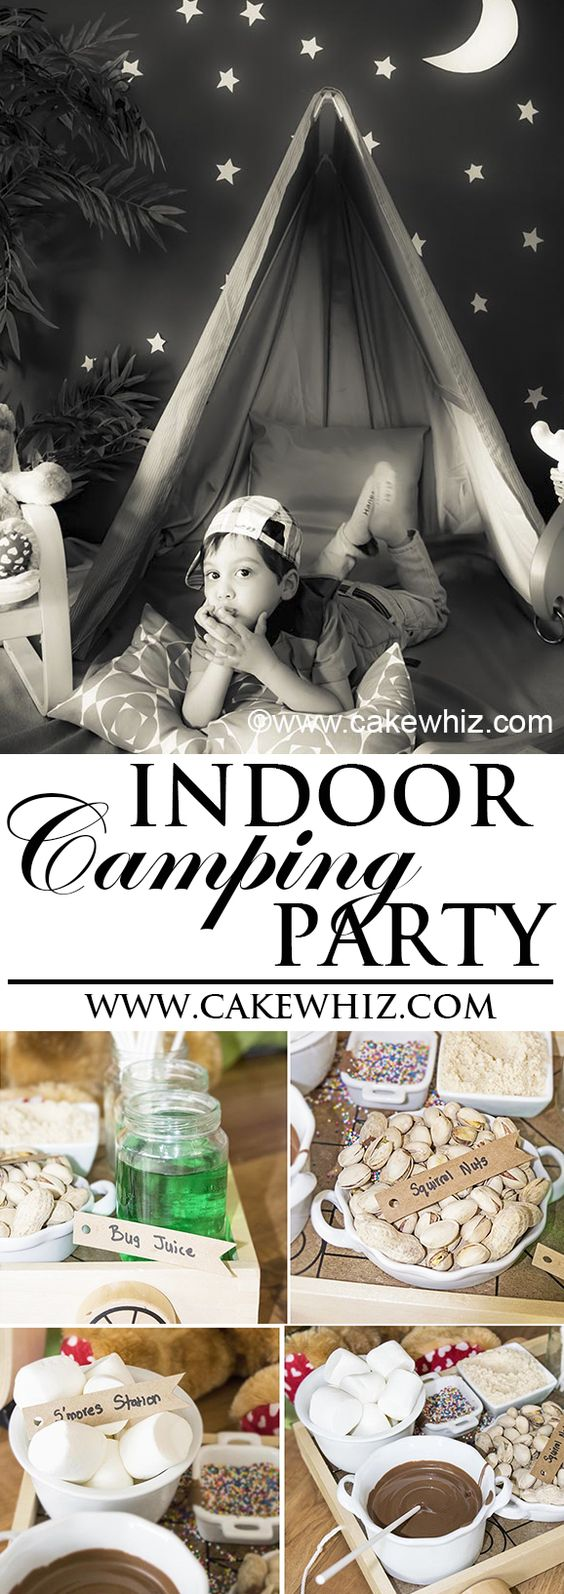 Throw a fun INDOOR CAMPING PARTY for kids when it's too cold to go out camping in the woods. Great activity for Summer time or even boys birthdays. {Ad} From cakewhiz.com #drumstickcone